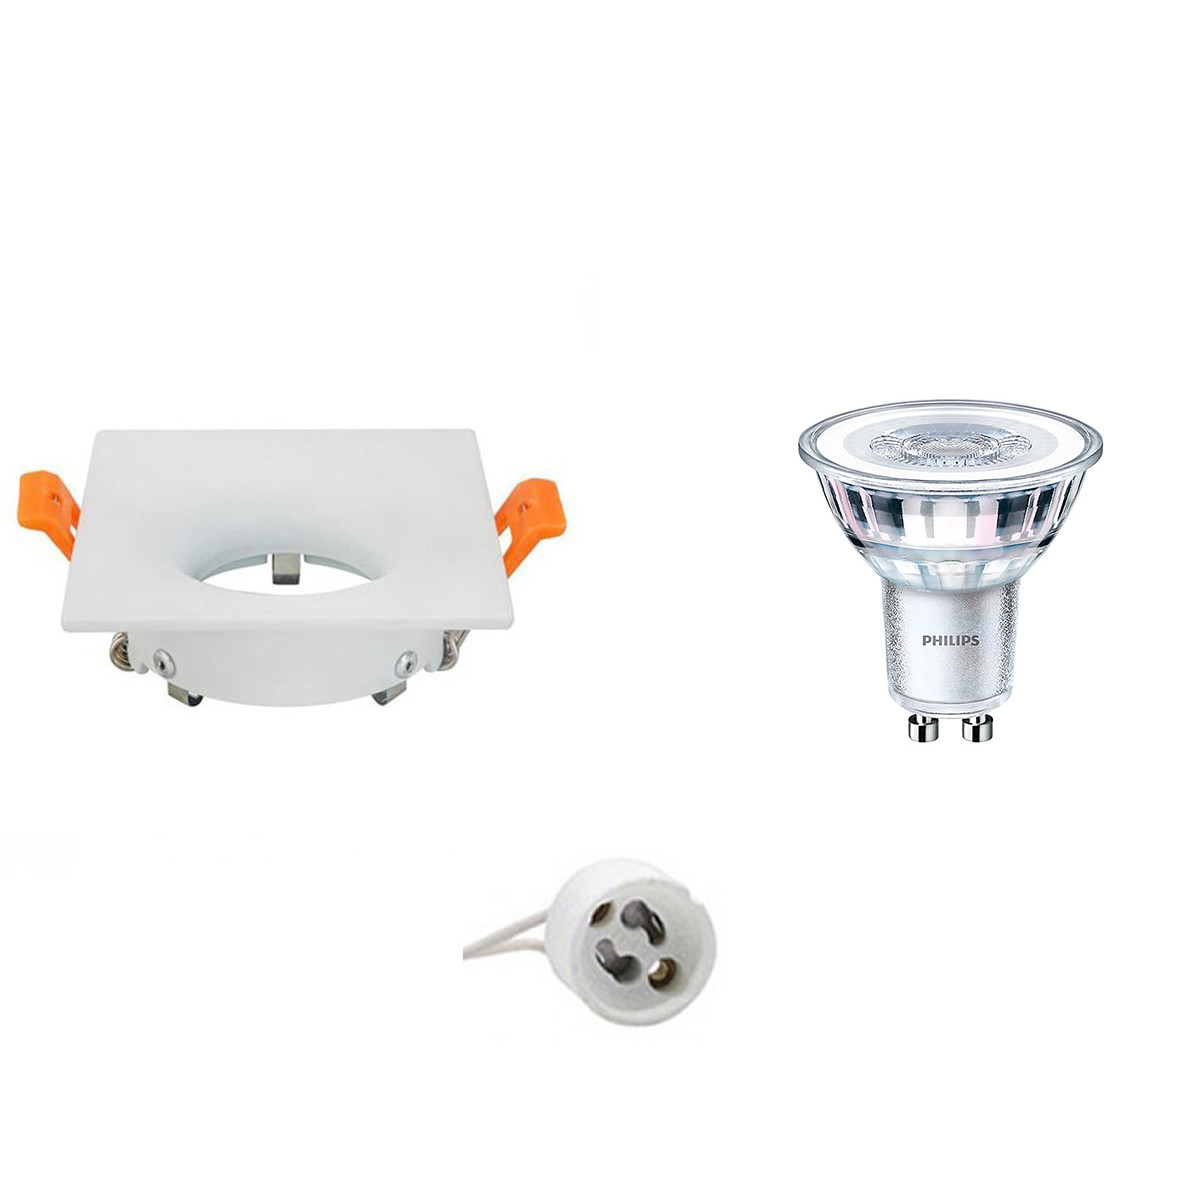 PHILIPS - LED Spot Set - CorePro 840 36D - GU10 Fitting - Dimbaar - Inbouw Vierkant - Mat Wit - 4W -